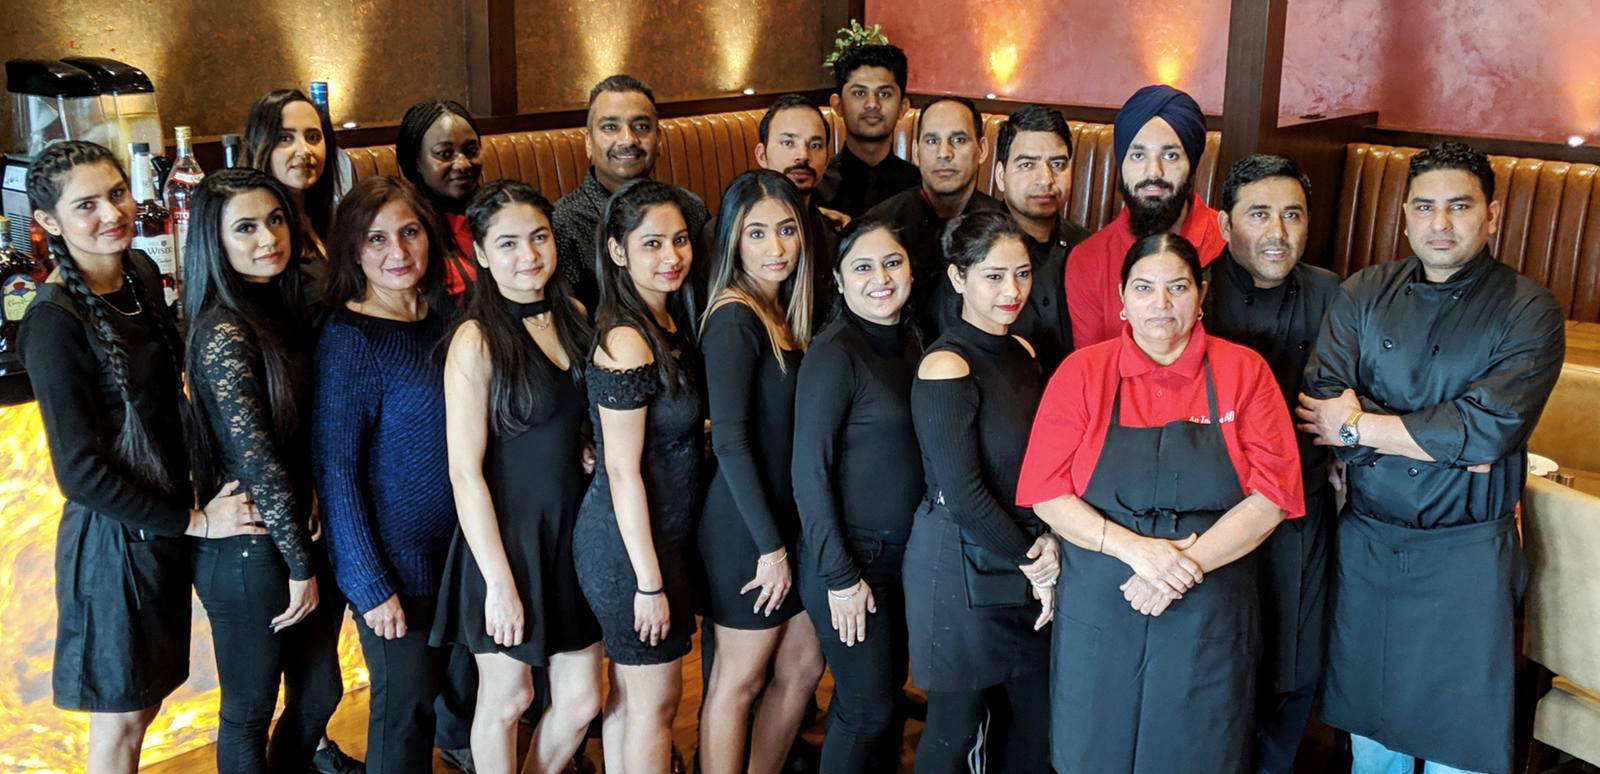 Gary Bakshi and the team welcome you to An Indian Affair, one of Langley's favourite restaurants.